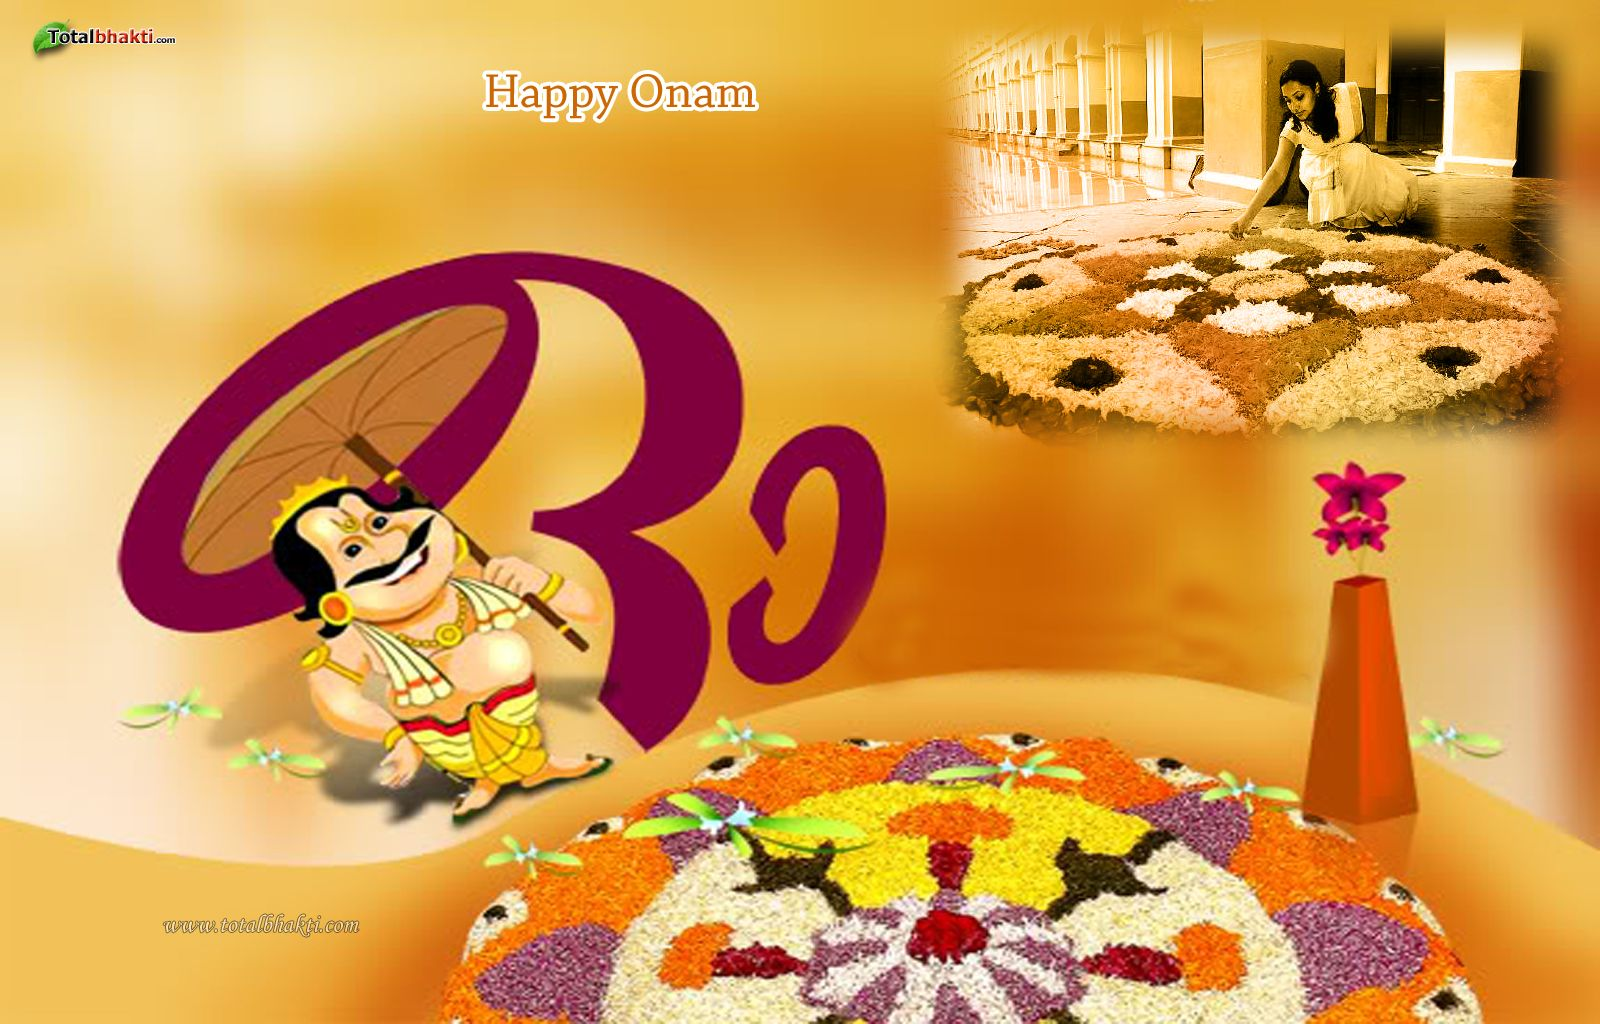 Onam greetings wishes and onam quotes onam wishes quotes and onam greetings wishes and onam quotes onam wishes quotes and greetings pinterest onam quotes kristyandbryce Image collections